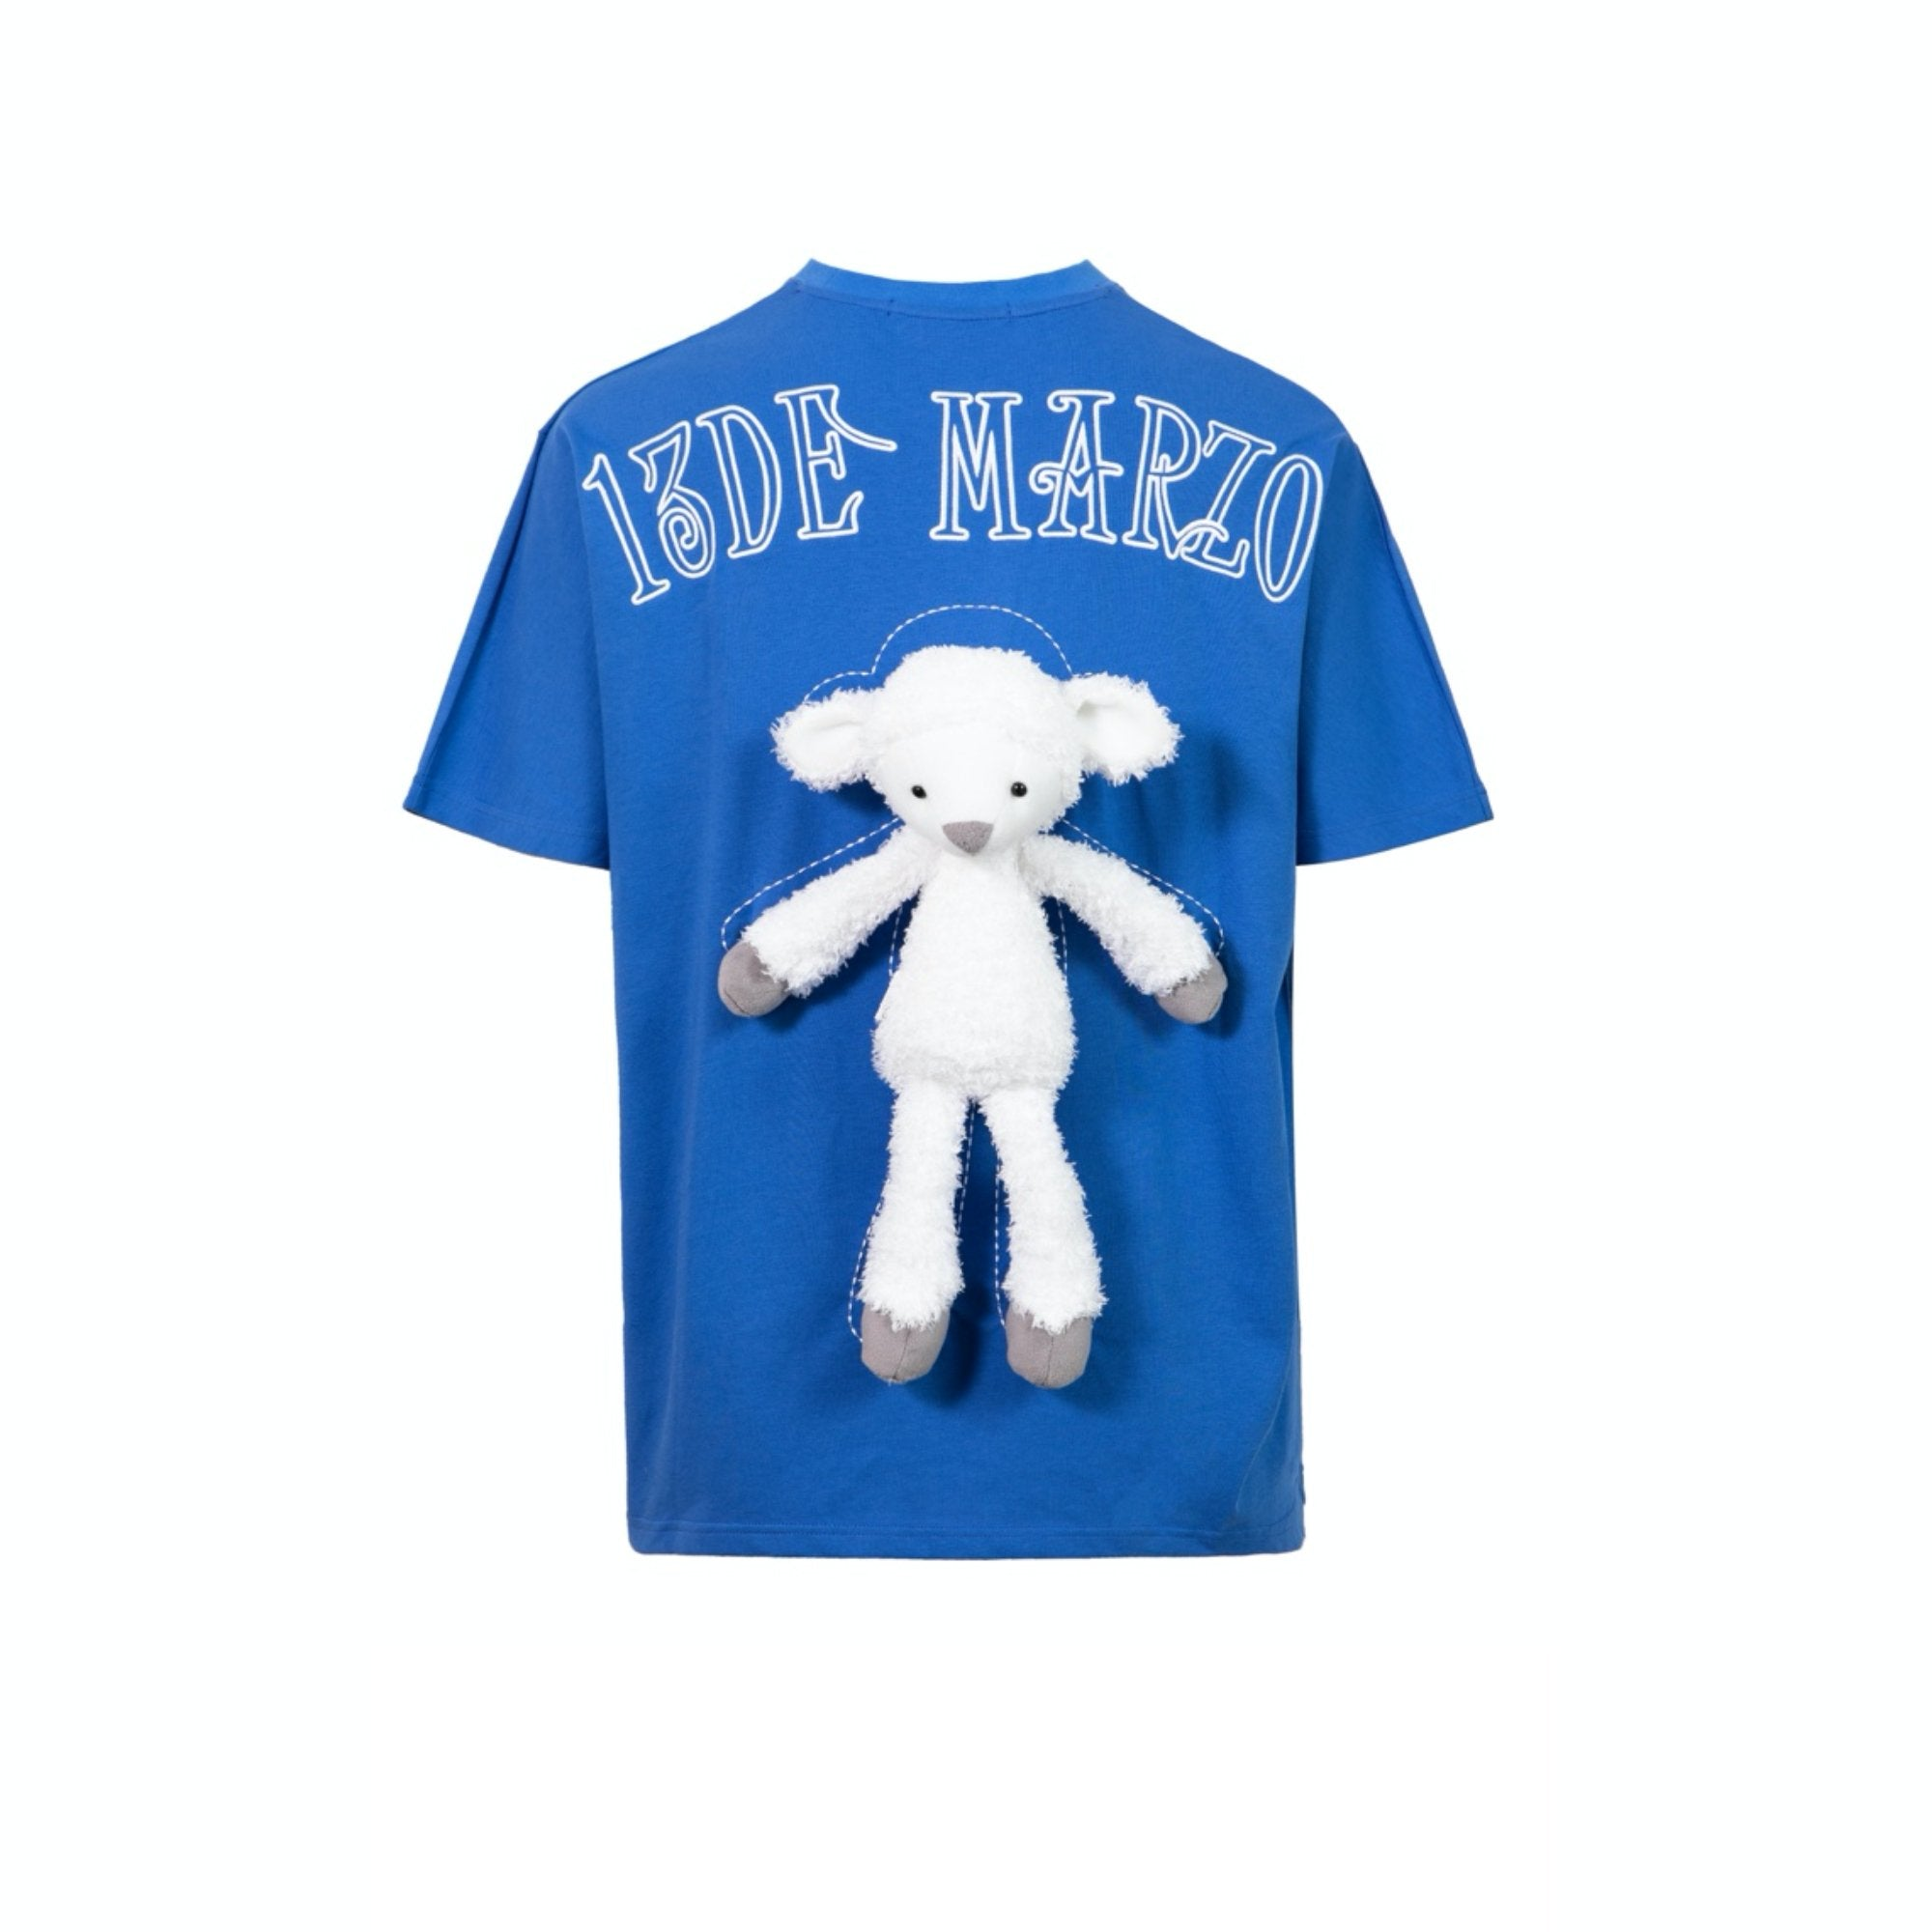 13 DE MARZO Plush Sheep Toy T-Shirt Blue | MADA IN CHINA